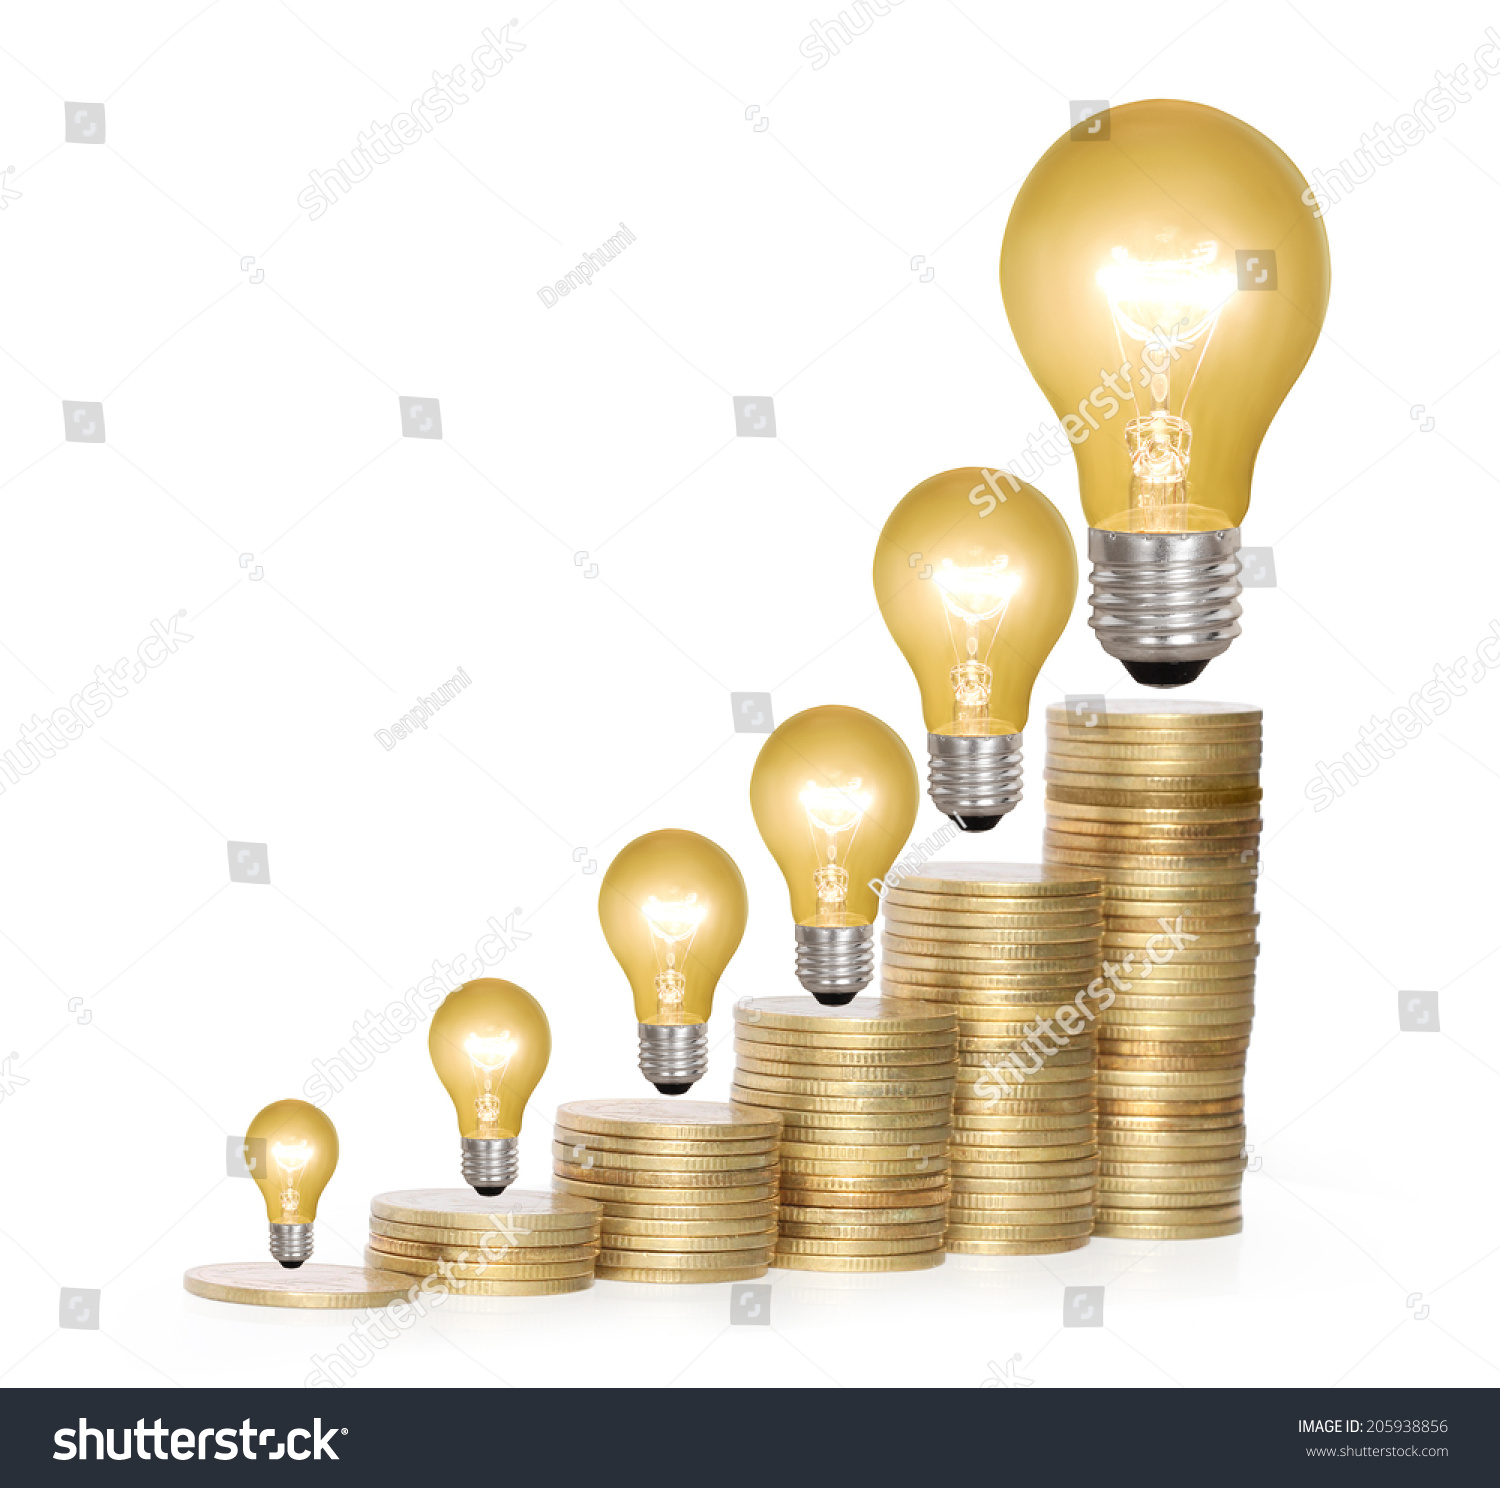 Money saved different kinds light bulbs stock photo 205938856 money saved in different kinds of a light bulbs arubaitofo Images